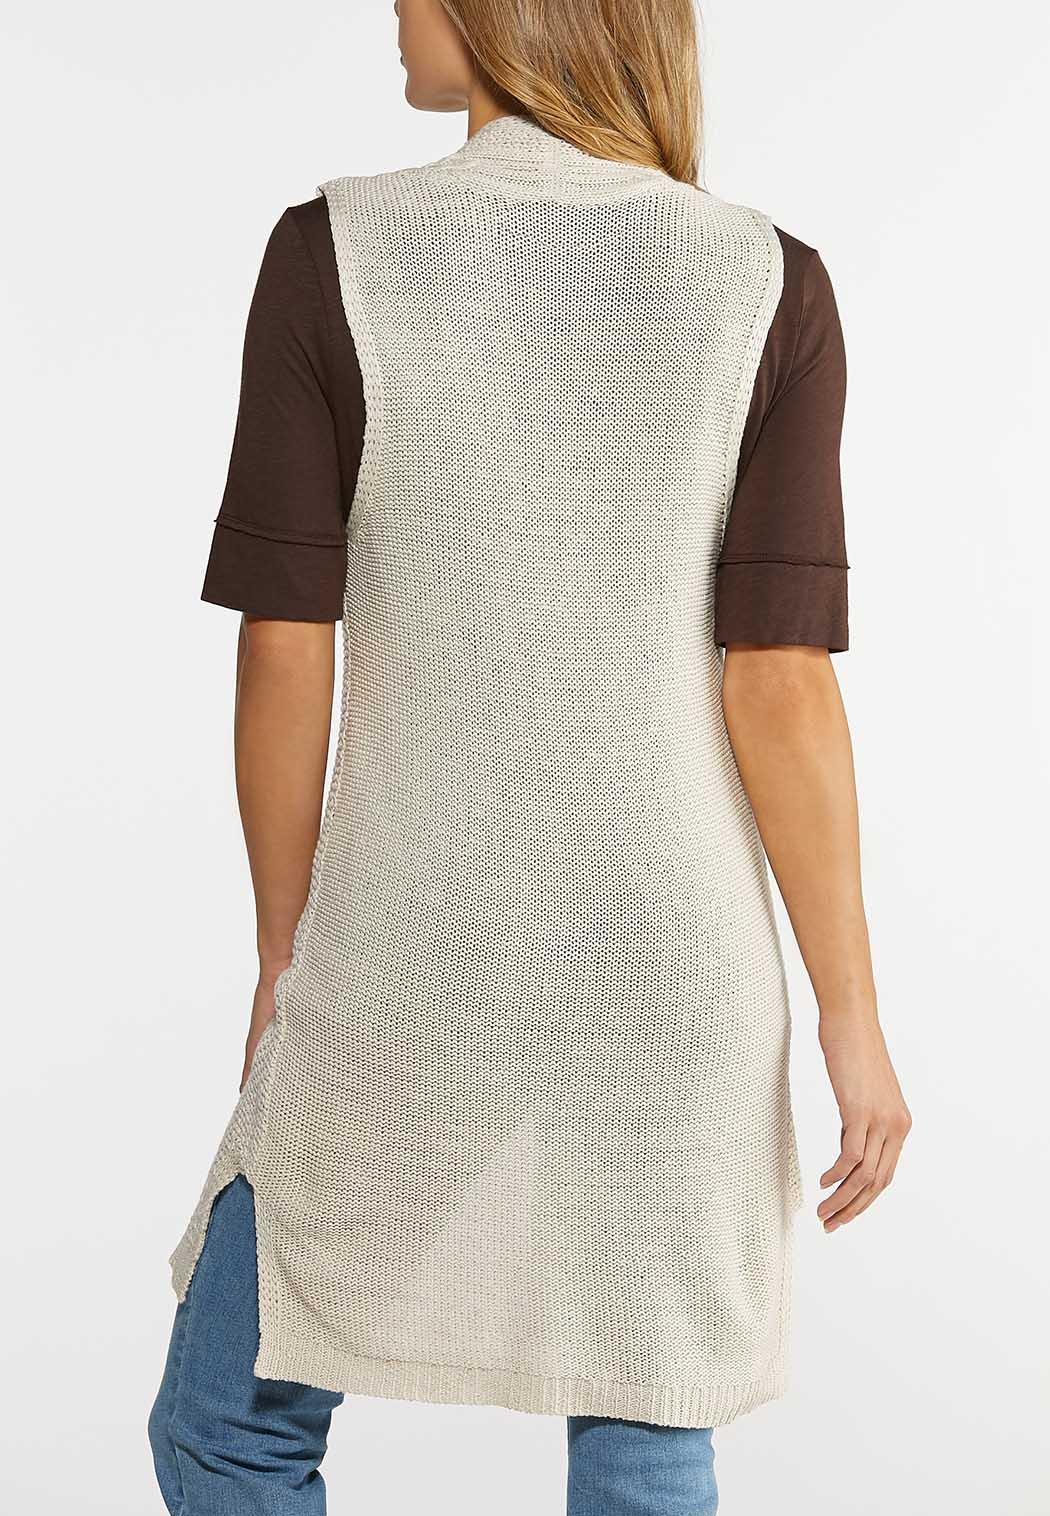 Cable Knit Vest (Item #43992846)